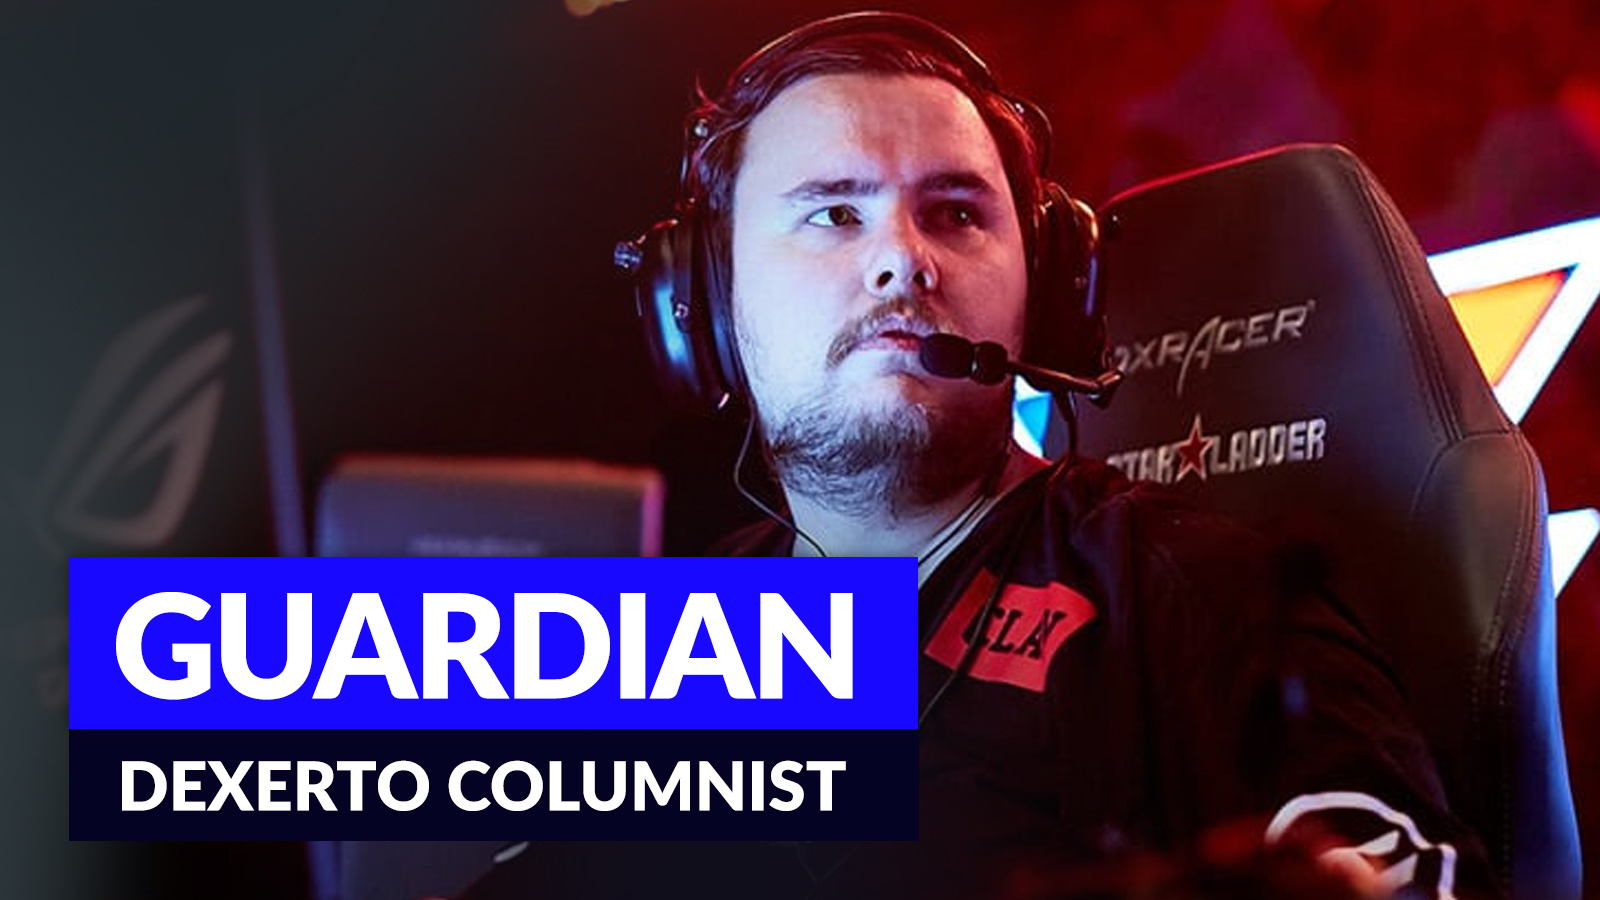 GuardiaN competing in CSGO.